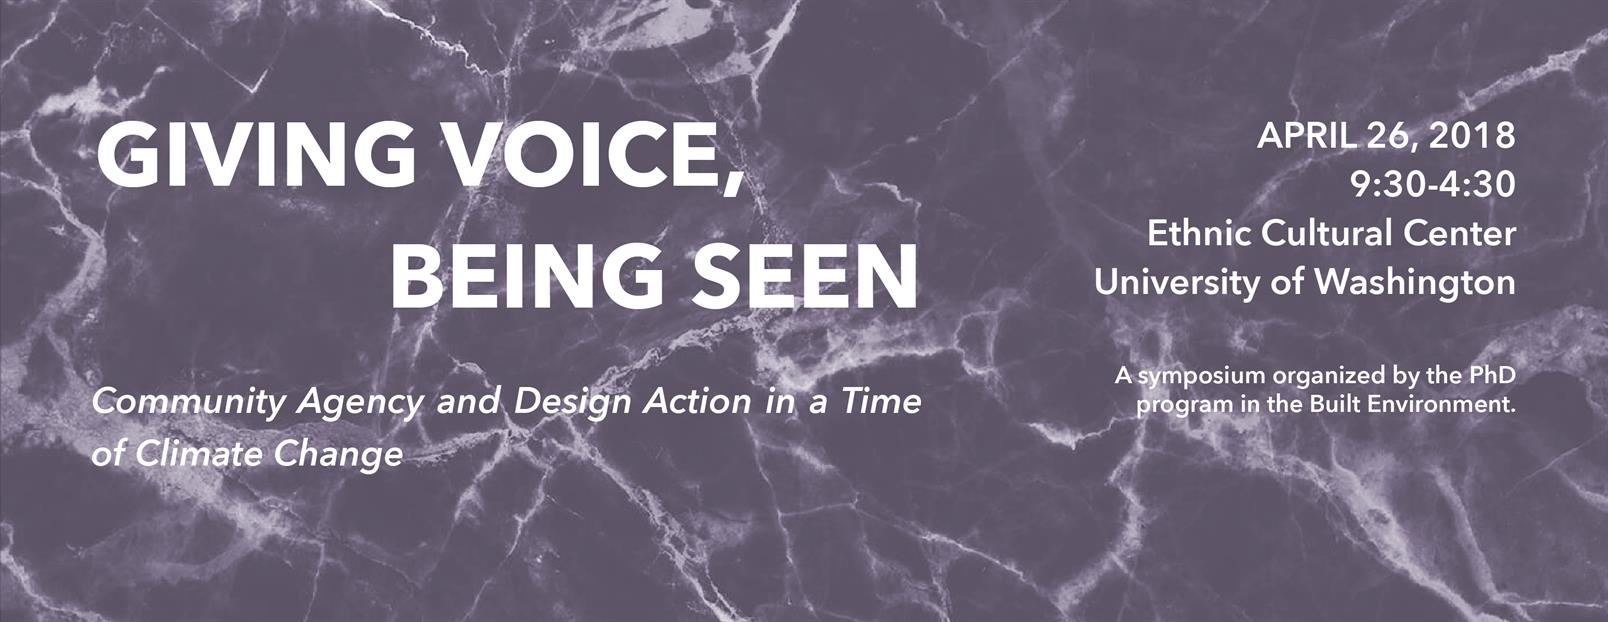 Giving Voice, Being Seen: Community Agency and Design Action in a Time of Climate Change